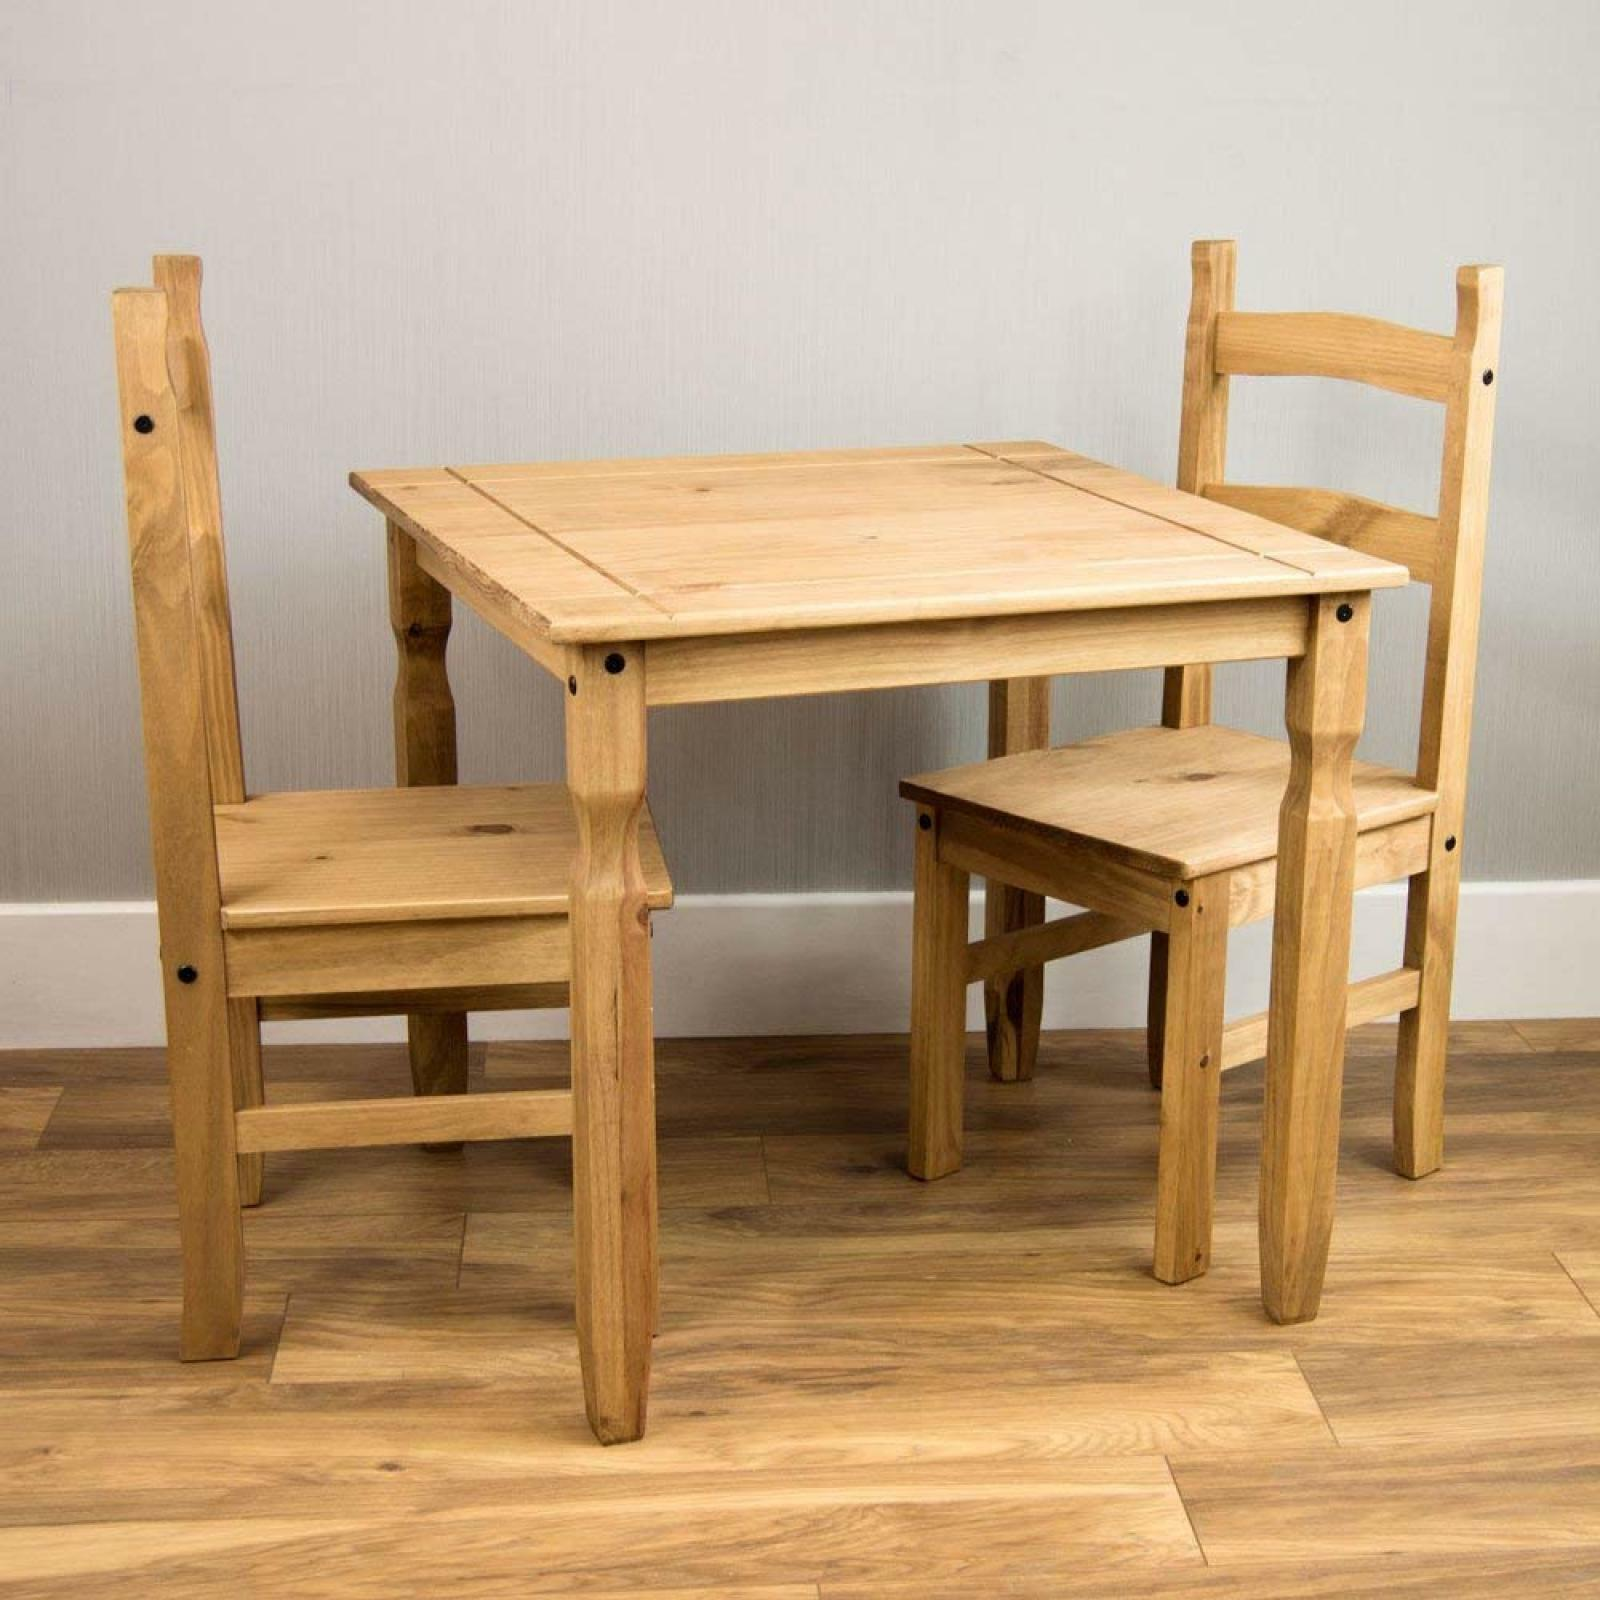 Picture of: Dining Table And Chair Set 2 Seater Solid Pine Wood Rustic Wax Finish Bargain 5055998407596 Ebay